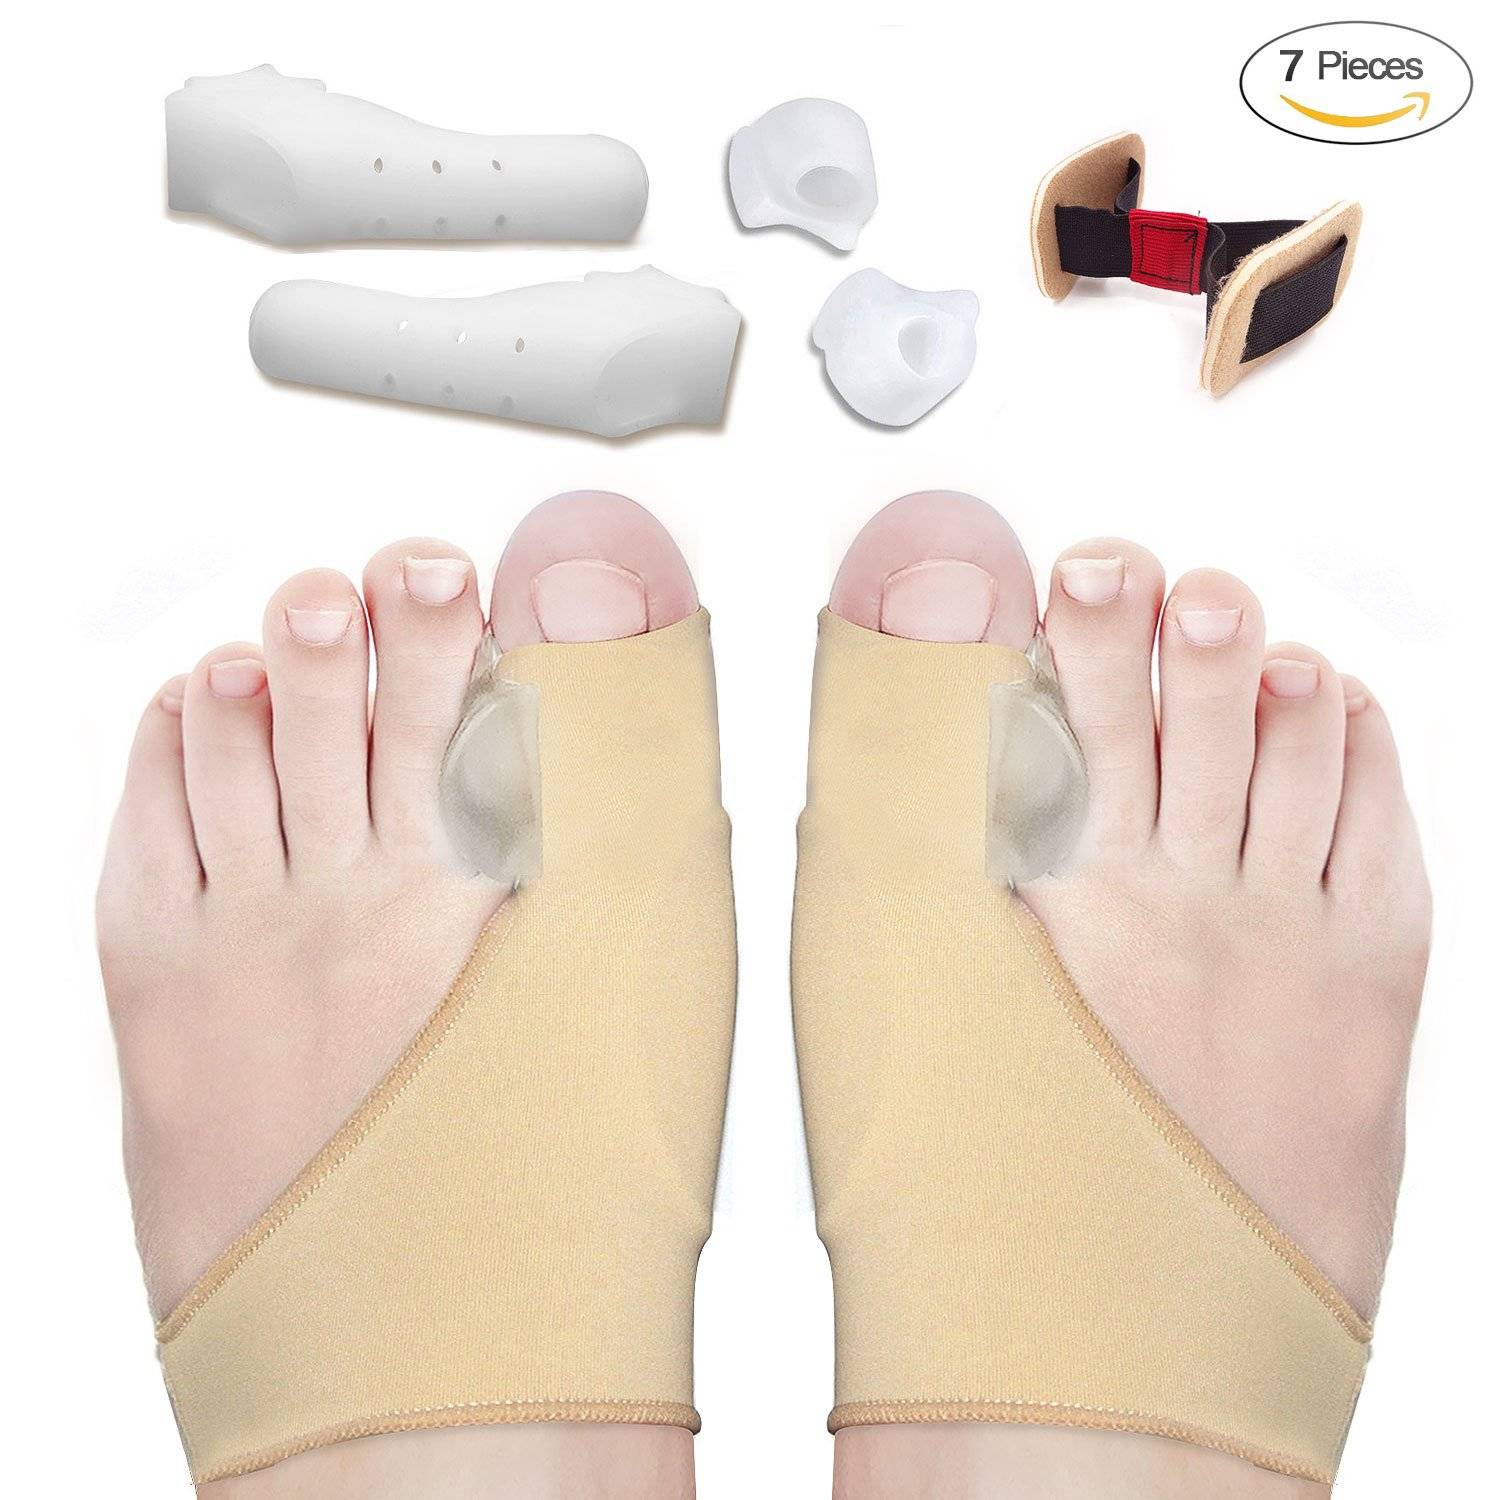 Bunion Corrector and Bunion Relief Sleeves Kit - Bunion Pads Food Pain Care - Gel Toe Separators Spacers Straighteners Splint Relieve Hallux Valgus,Tailors Bunion,Big Toe Joint,Hammer Toe